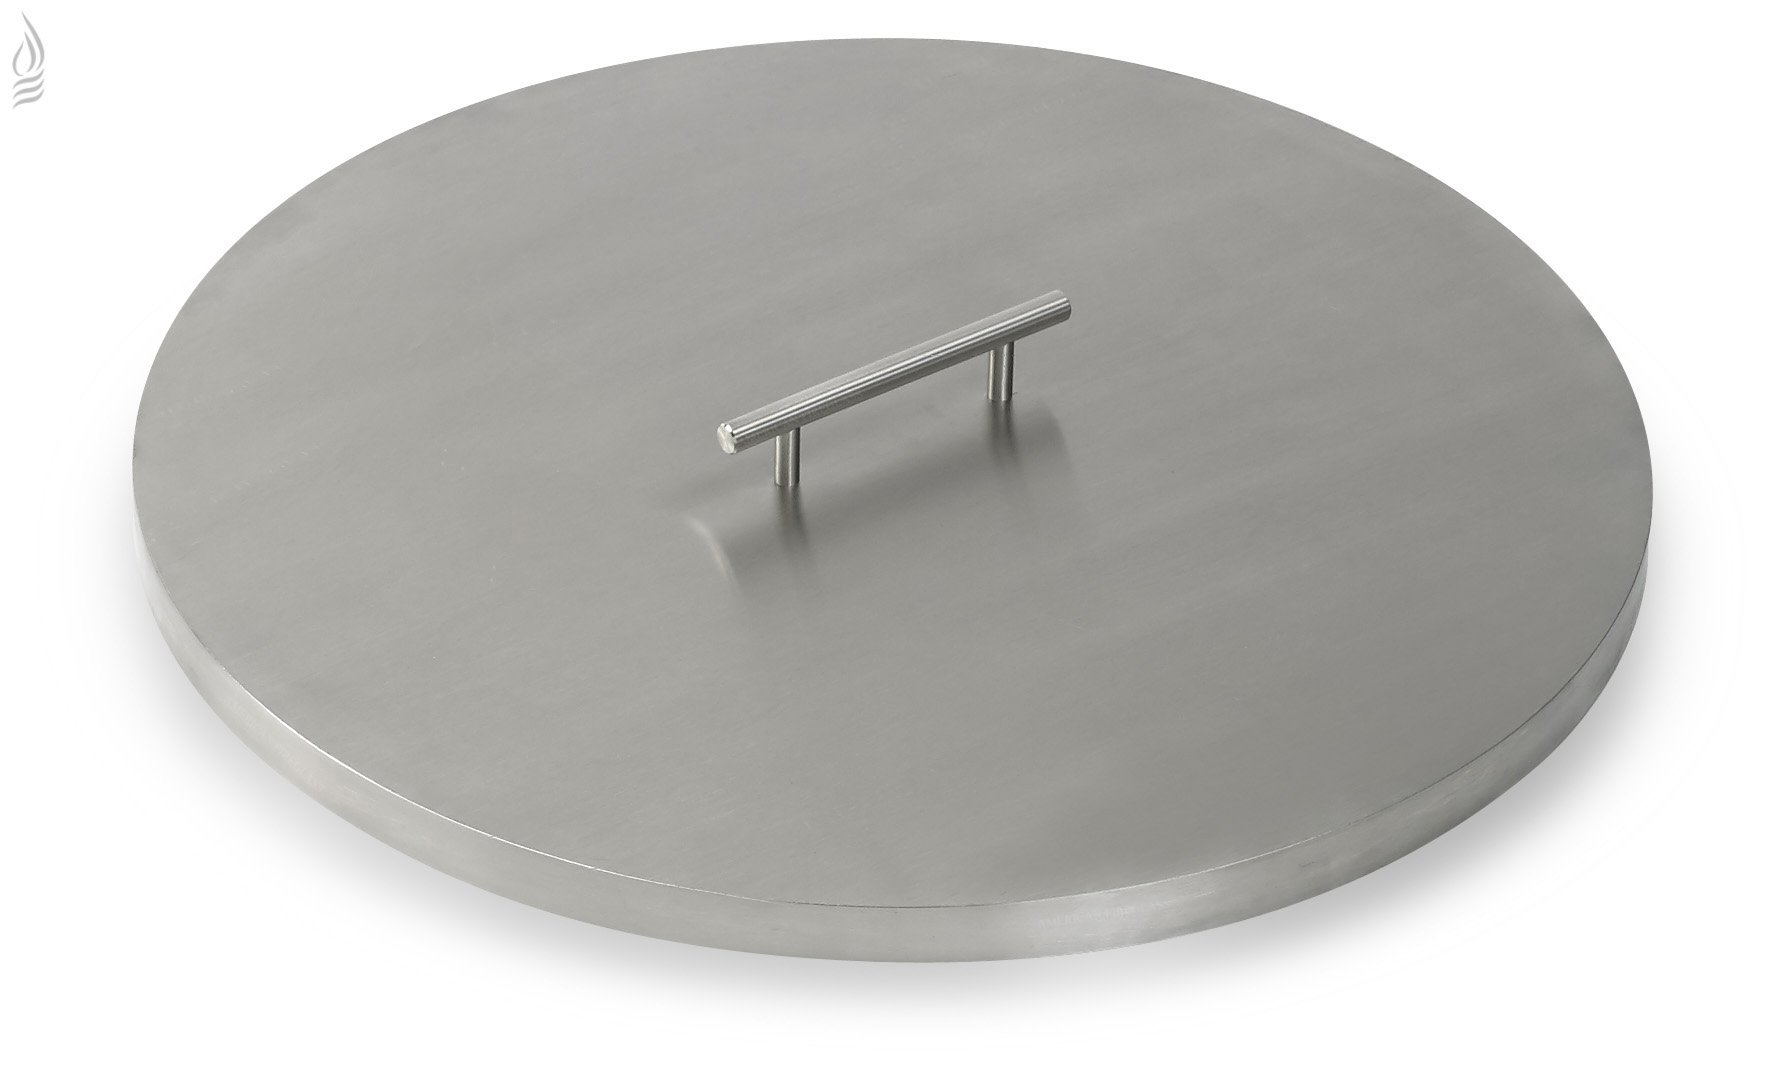 American Fireglass Stainless Steel Fire Pit Pan Covers Round (19 Inch)